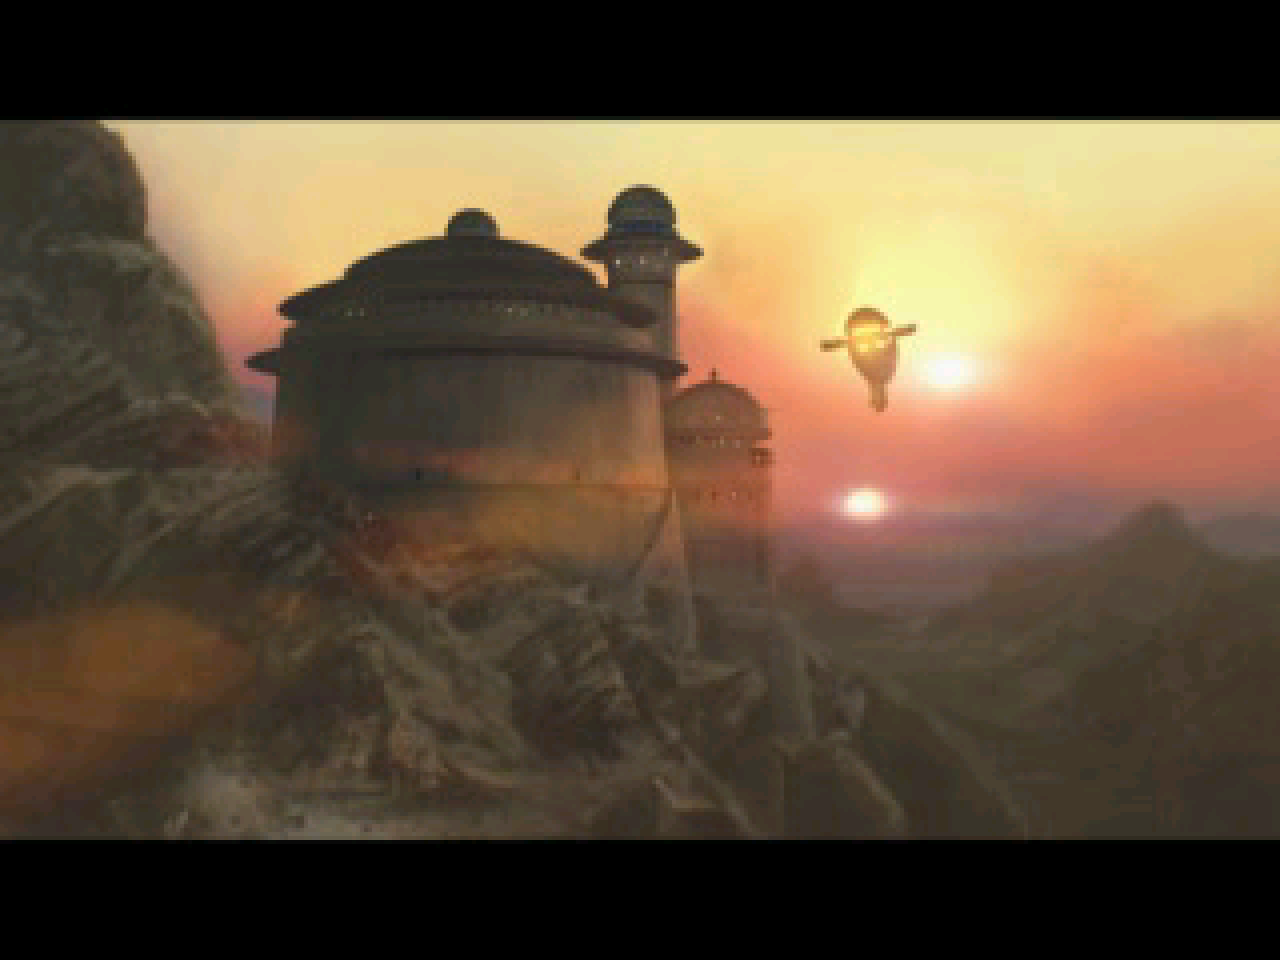 https://s3.eu-west-3.amazonaws.com/games.anthony-dessalles.com/Star Wars Demolition PS1 2020 - Screenshots/Star Wars Demolition-201125-204844.png